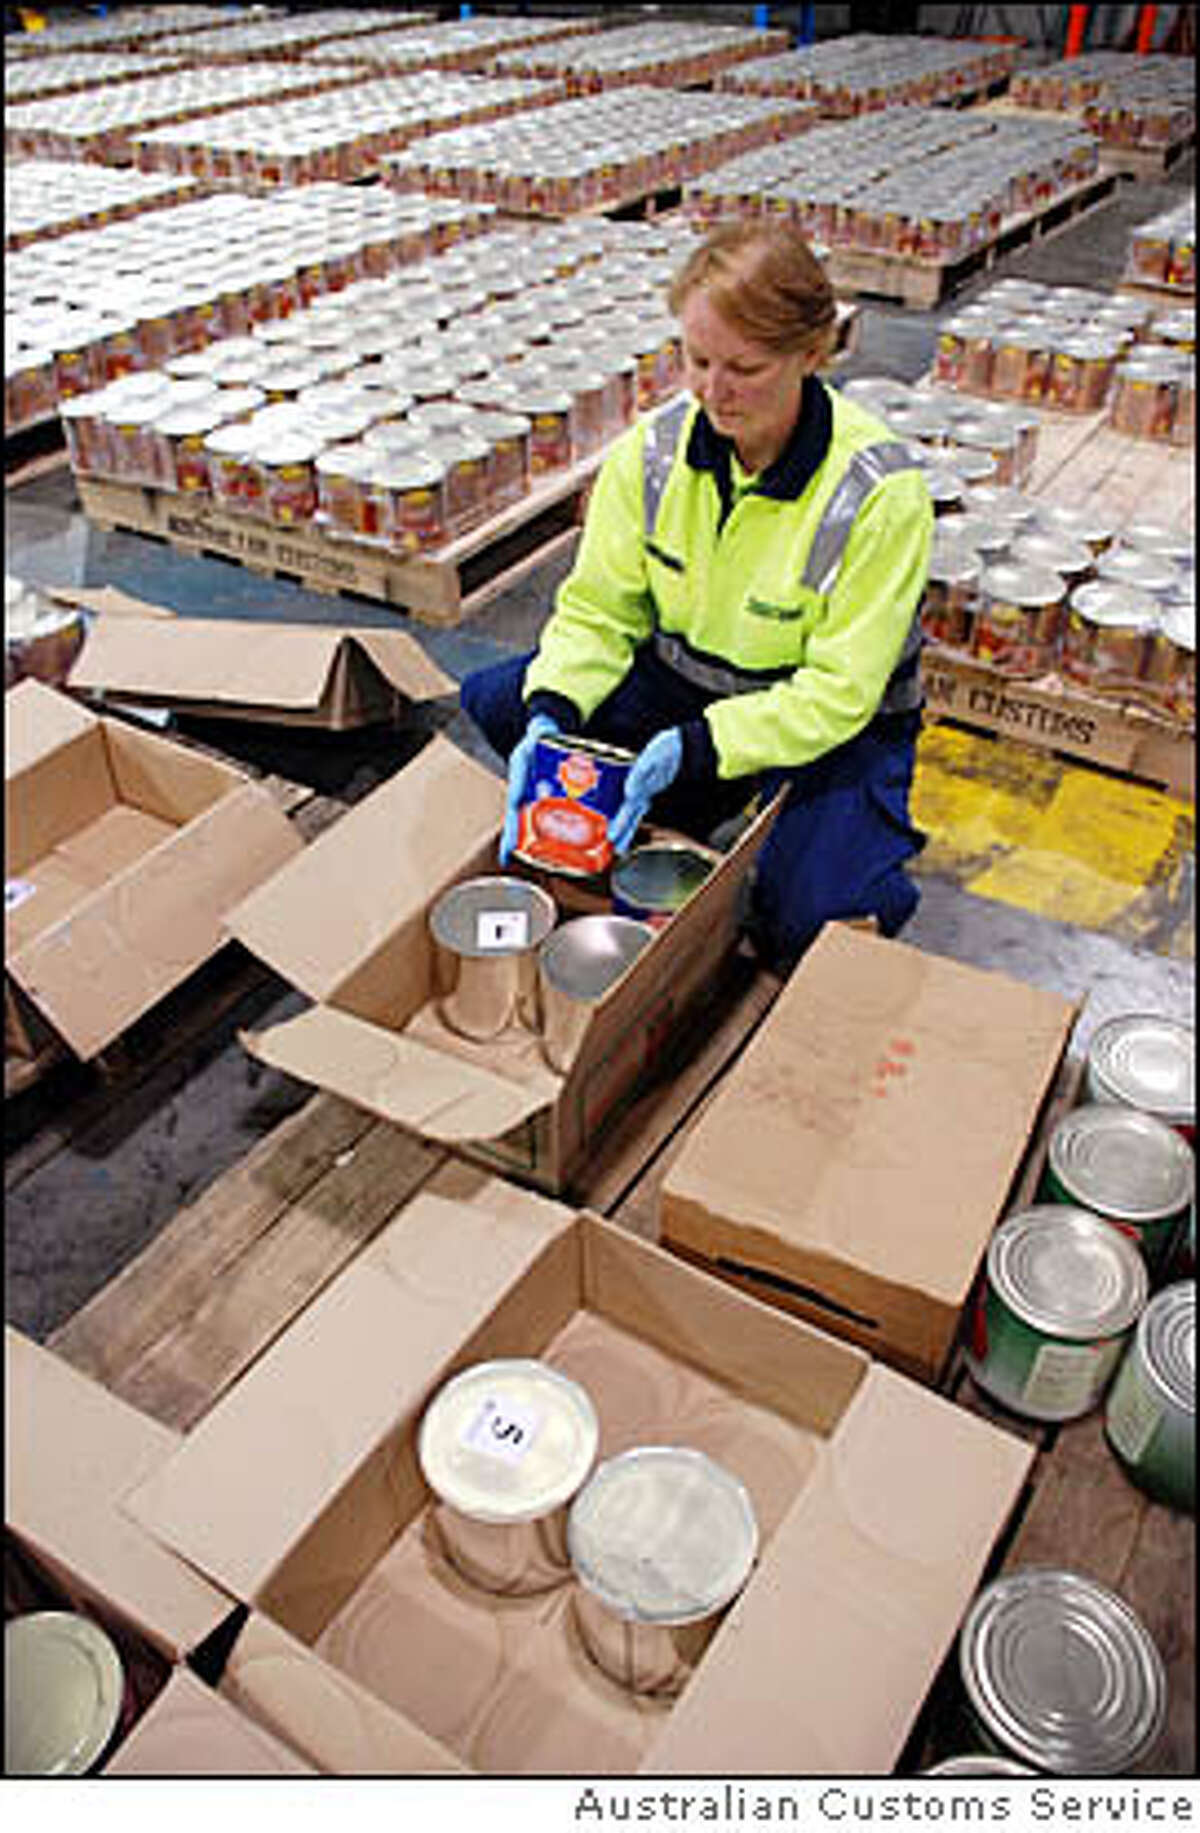 Canned tomatoes In this photo supplied by the Australian Customs Service, an unidentified customs agent unpacks tins disguised as canned tomato holding thousands of ecstasy tablets at a warehouse in Melbourne, Australia, Friday, Aug. 8, 2008. Australian Federal Police said Friday they have busted an international drug ring and seized nearly 5 tons of ecstasy in what they have called